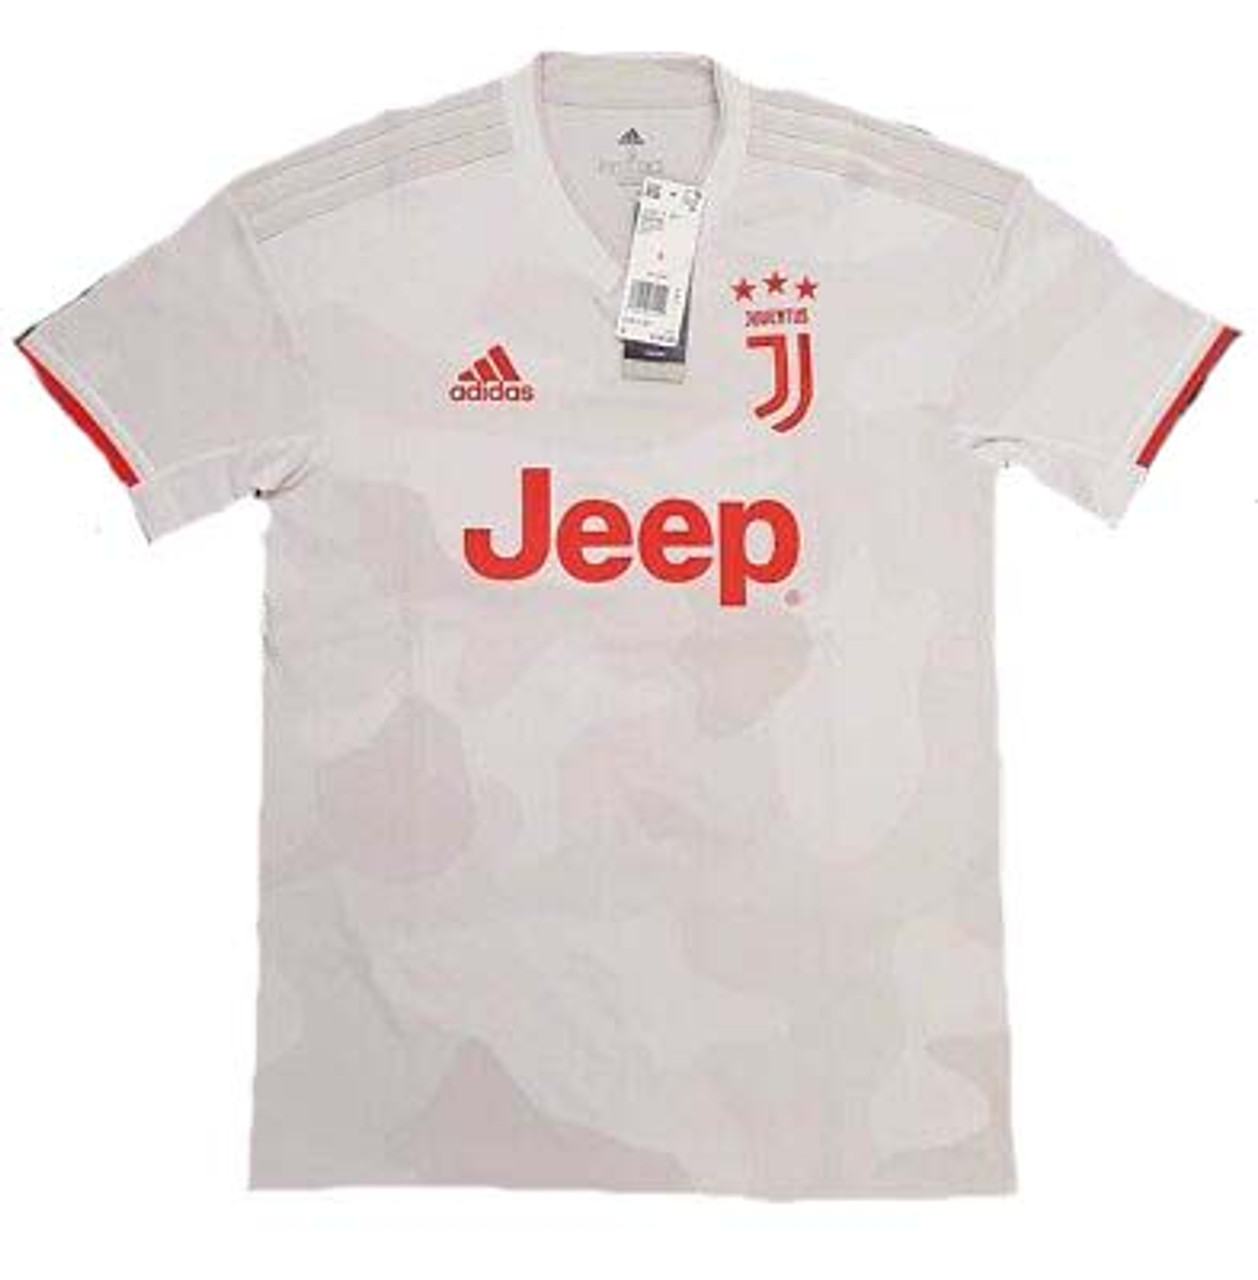 new style 32b89 3ed01 ADIDAS JUVENTUS 2020 BOYS AWAY JERSEY WHITE